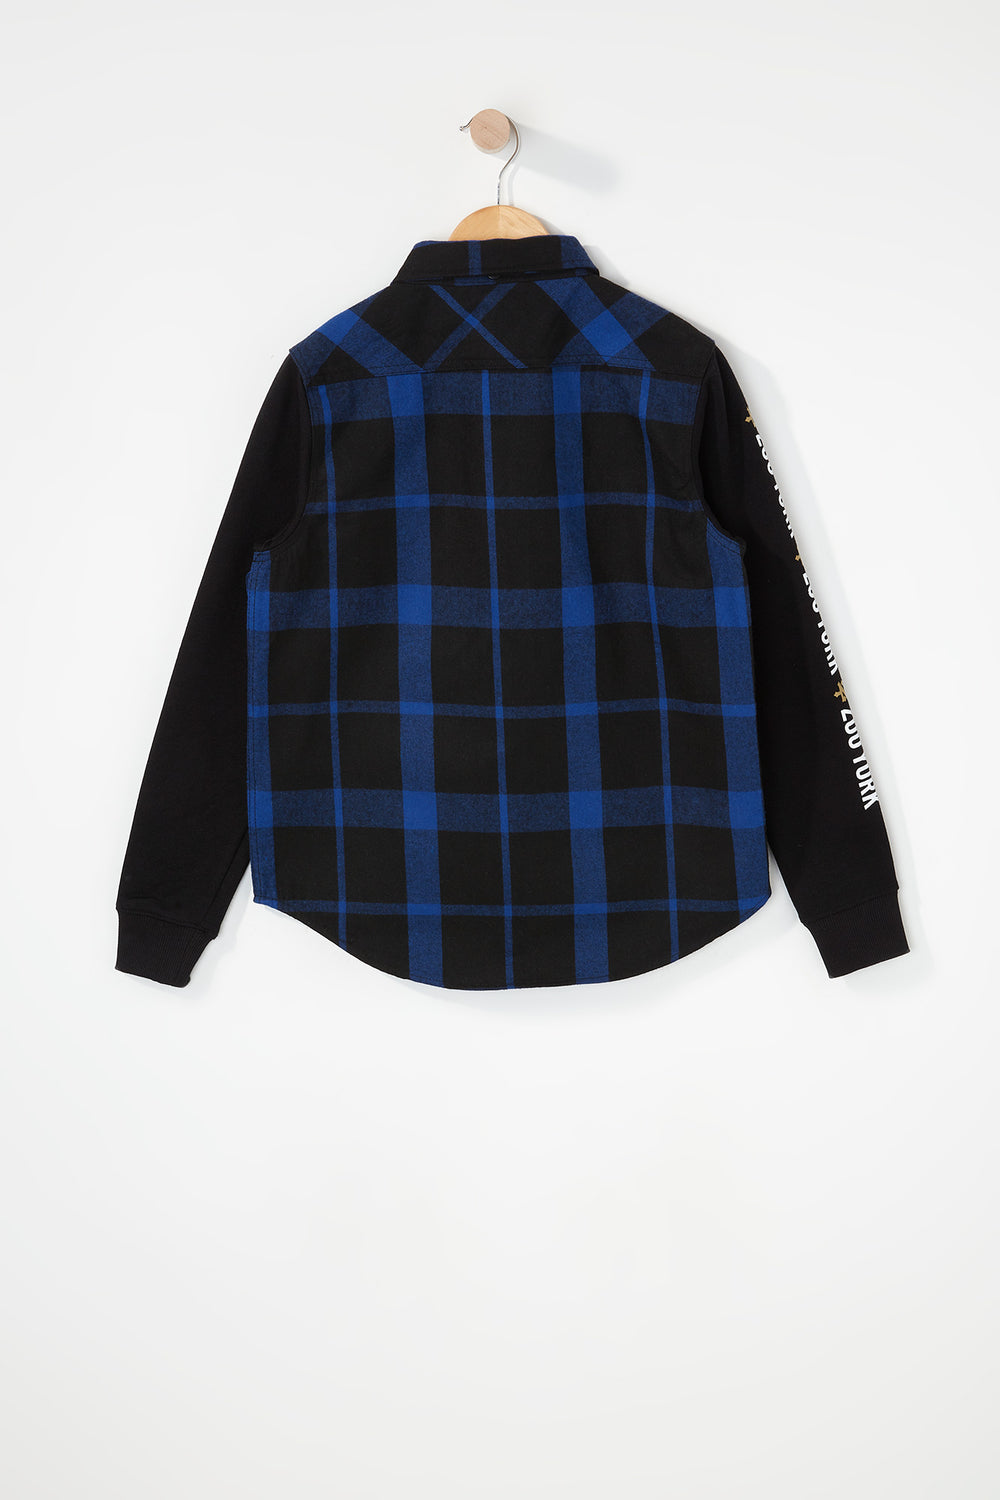 Zoo York Boys Hooded Flannel Button-Up Shirt Blue